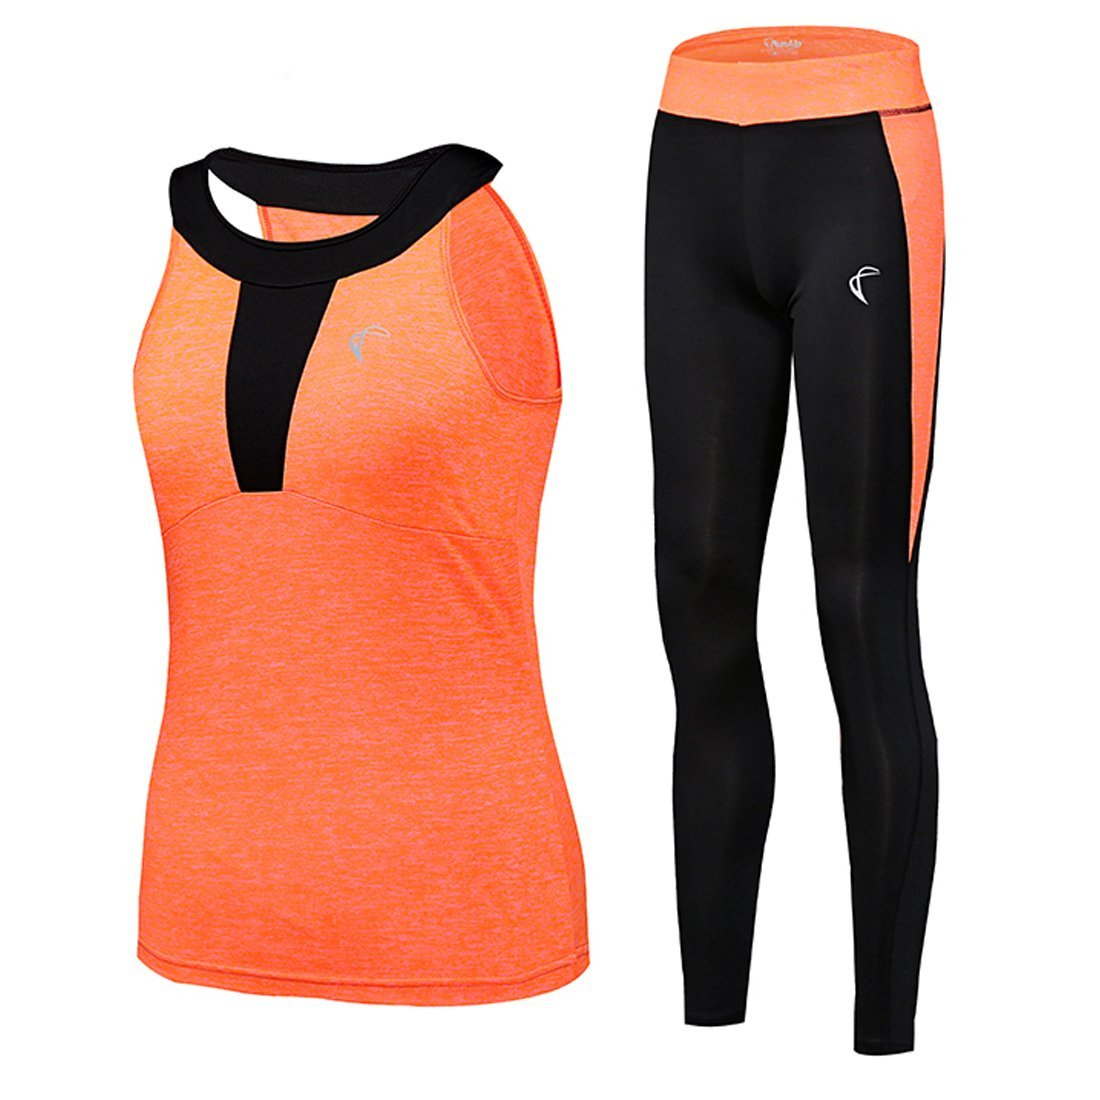 J.CARP Tracksuit for Women Yoga Workout Fitness Running Athletic Sports Gym Tank Top Pant 2 Piece Set, Orange Top and Black Pant, Small by J.CARP